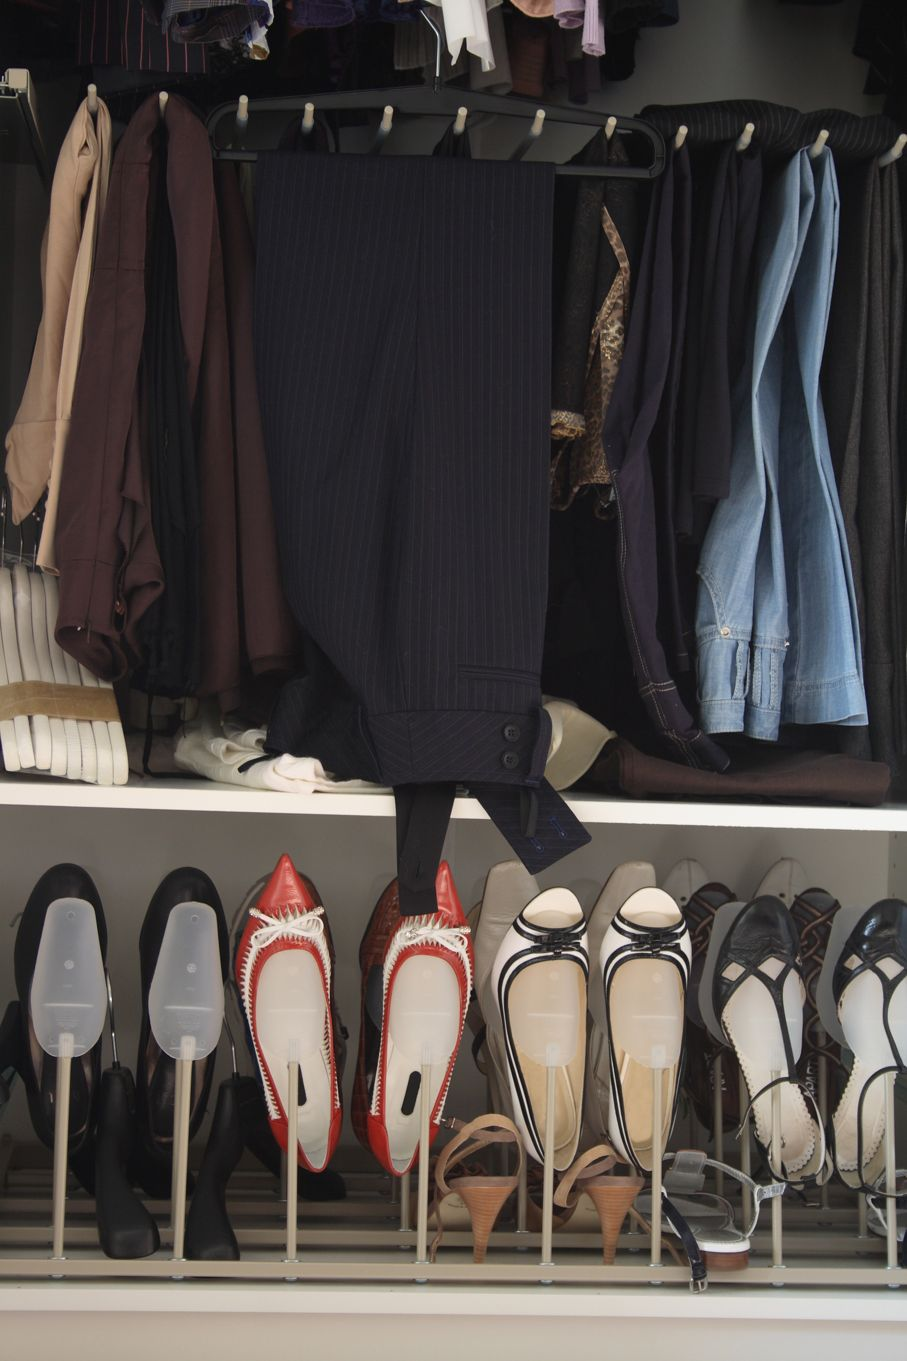 Opened women's wardrobe with clothes and shoes